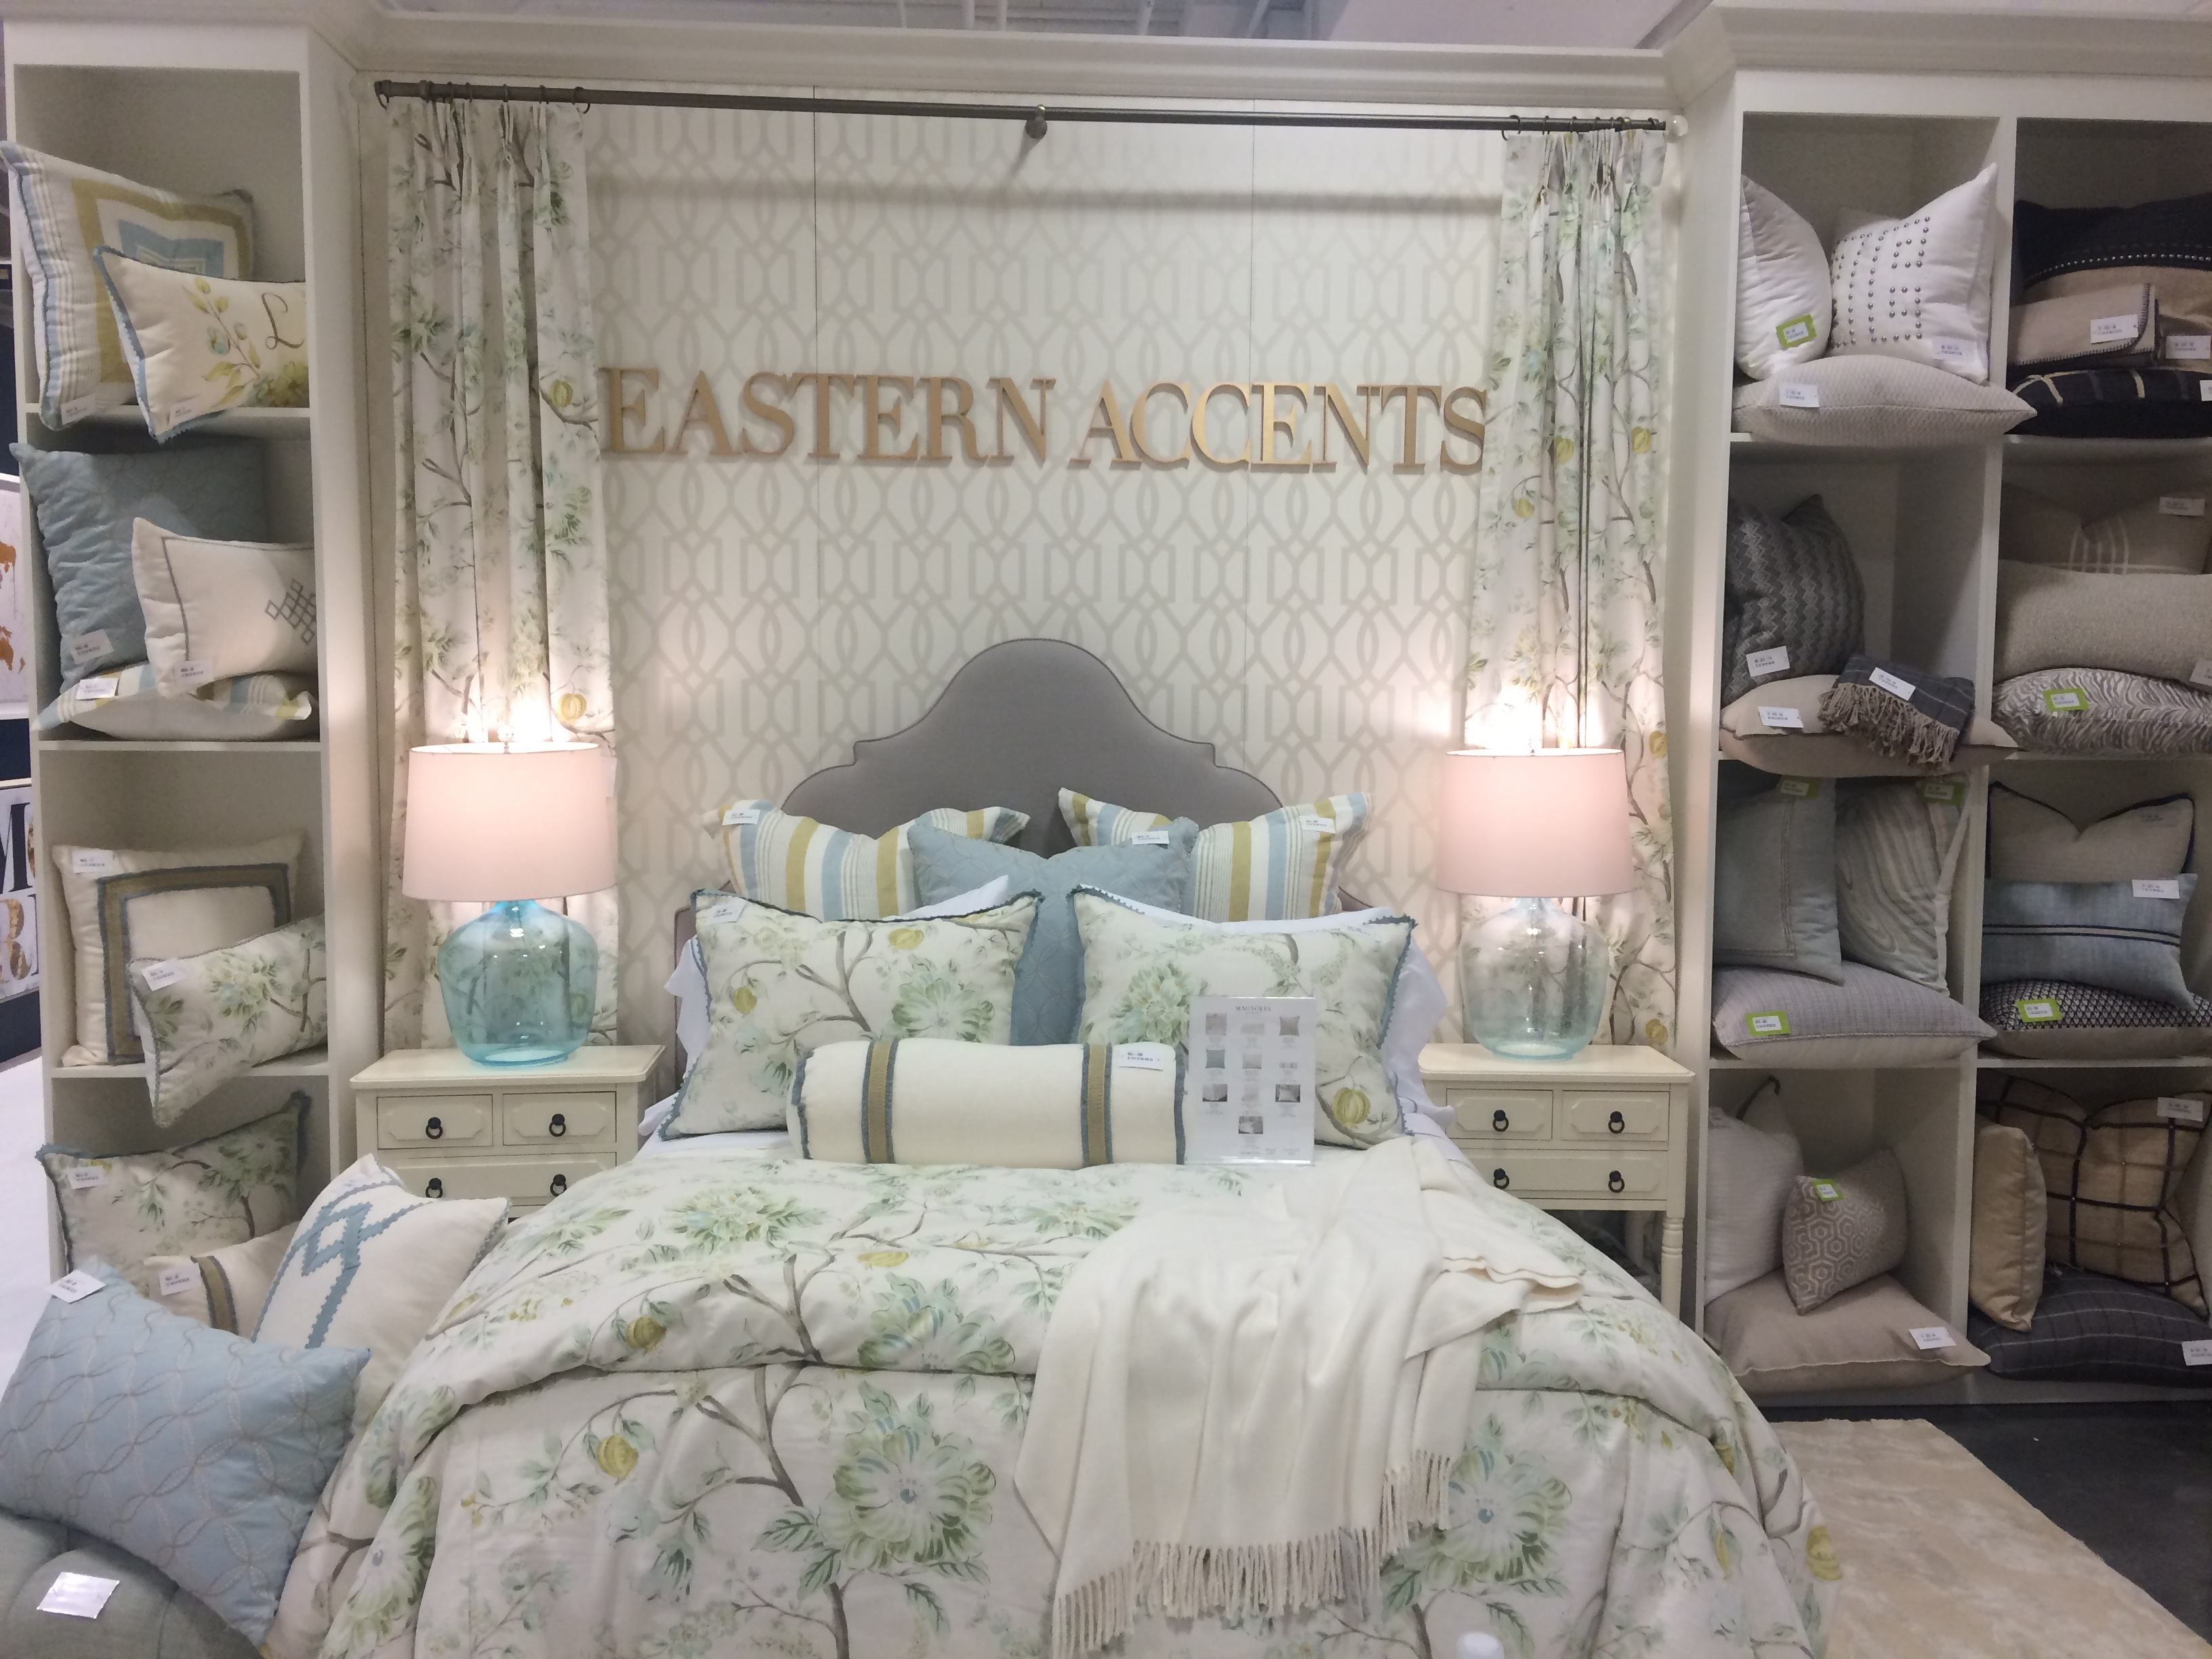 Eastern Accents International Market